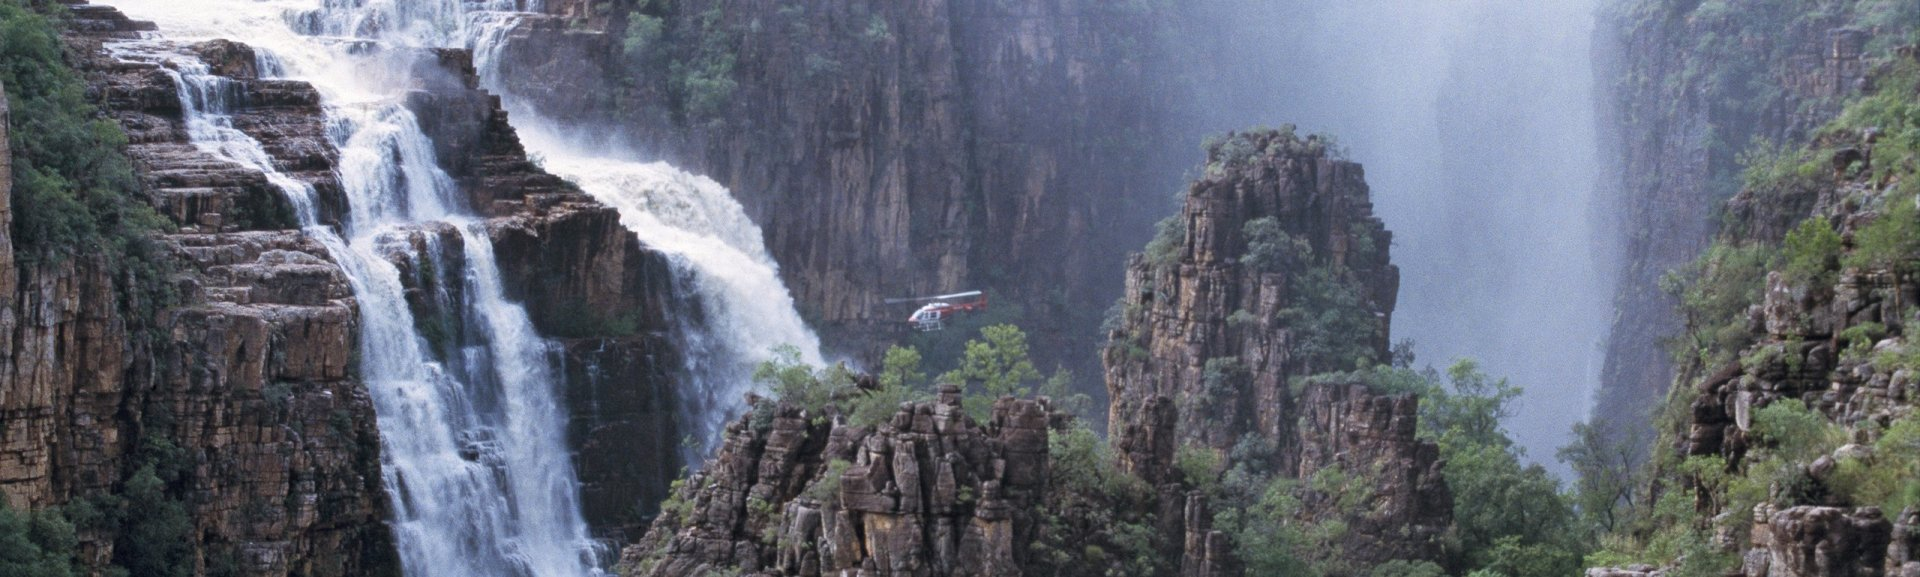 Helicopter over Twin Falls. Photo by Tourism NT.